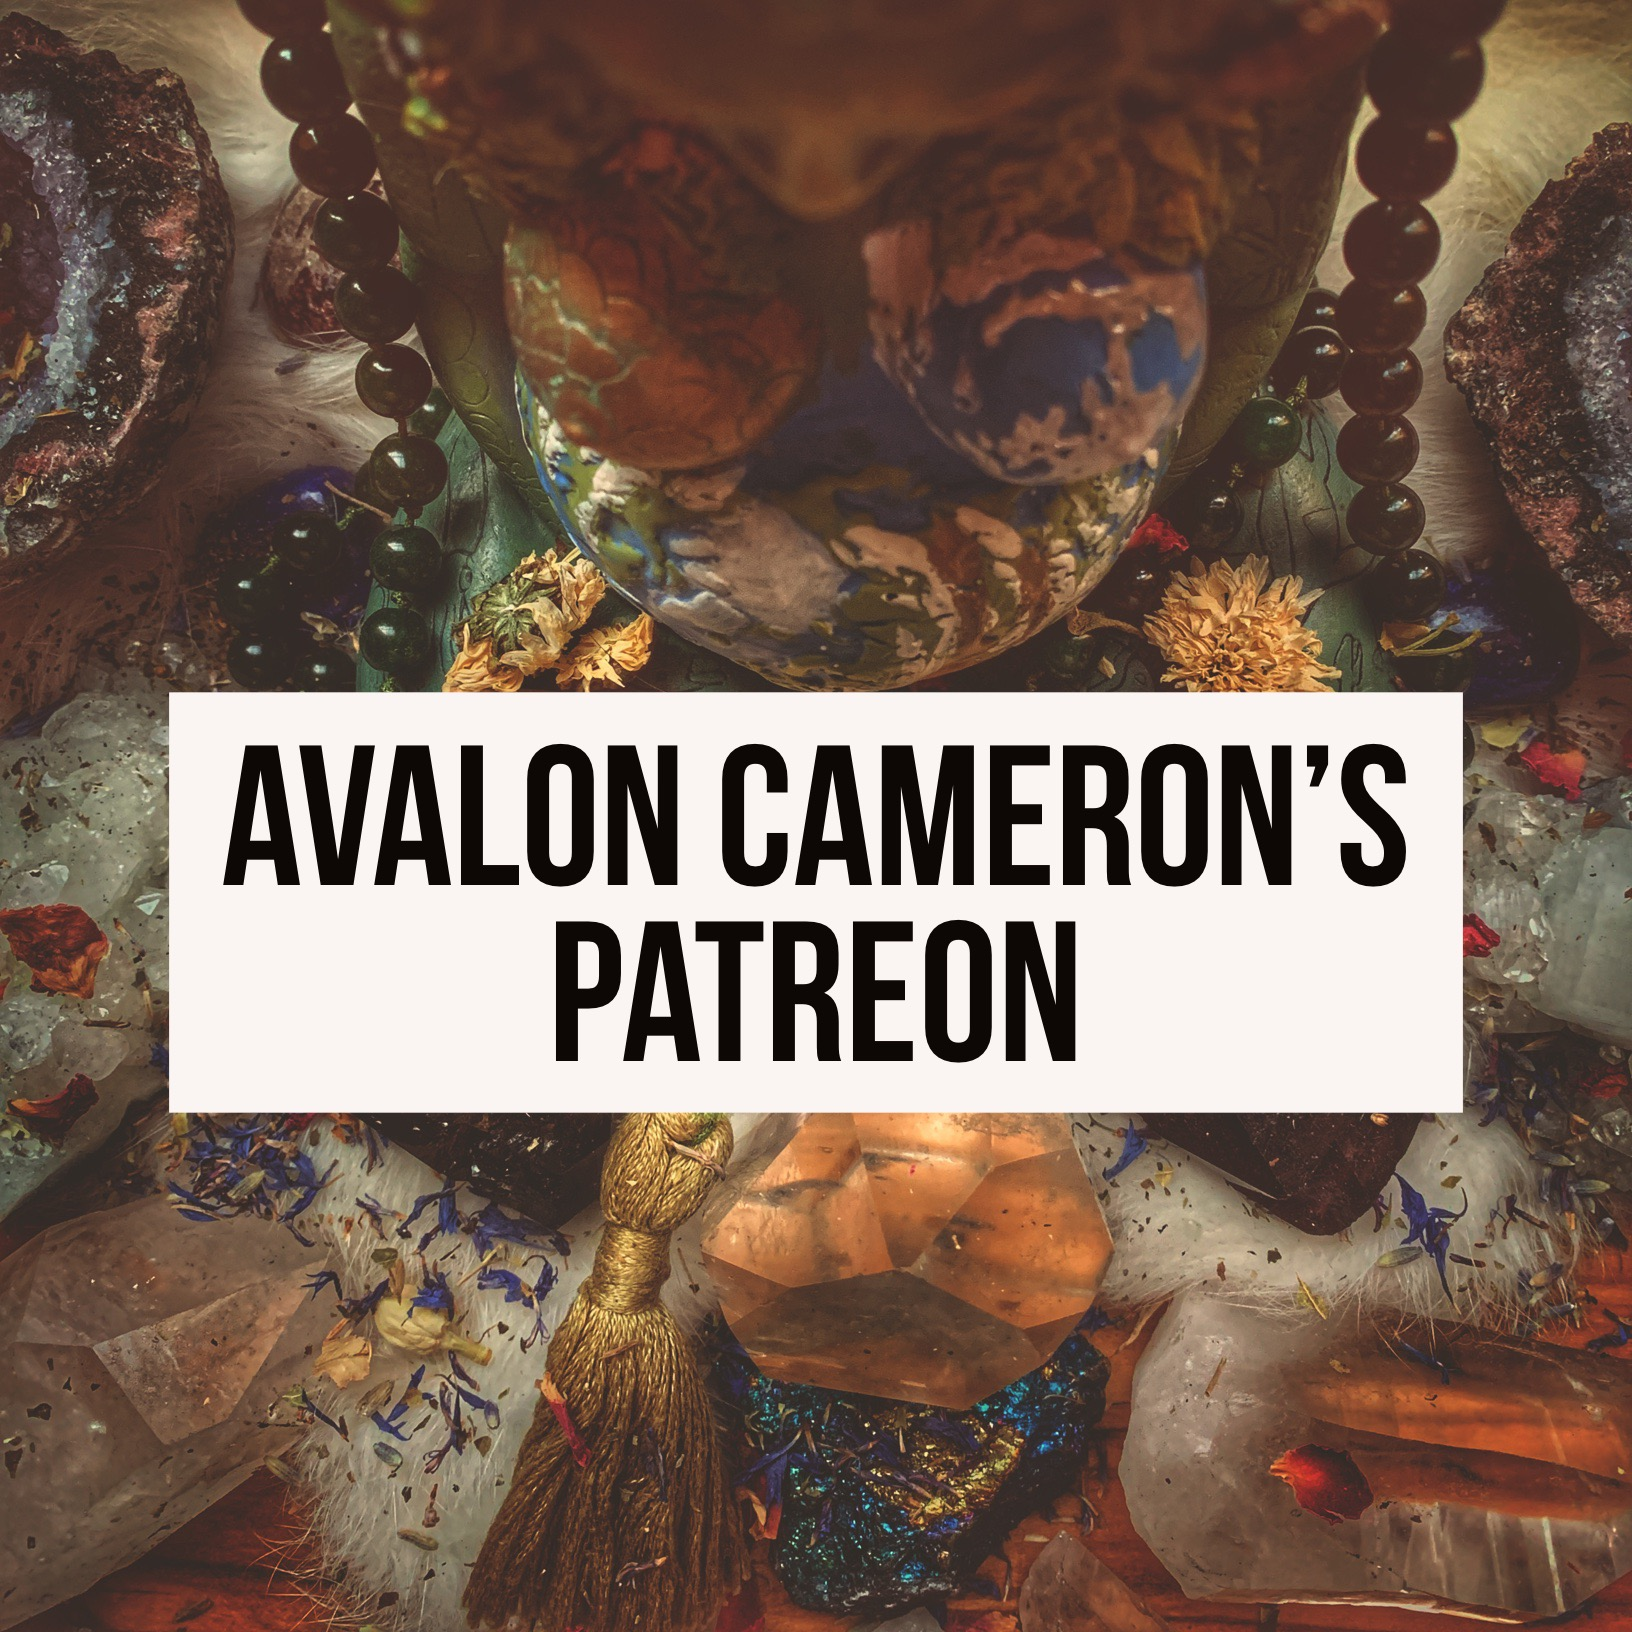 Avalon's Patreon Tribe Thumbnail.JPG